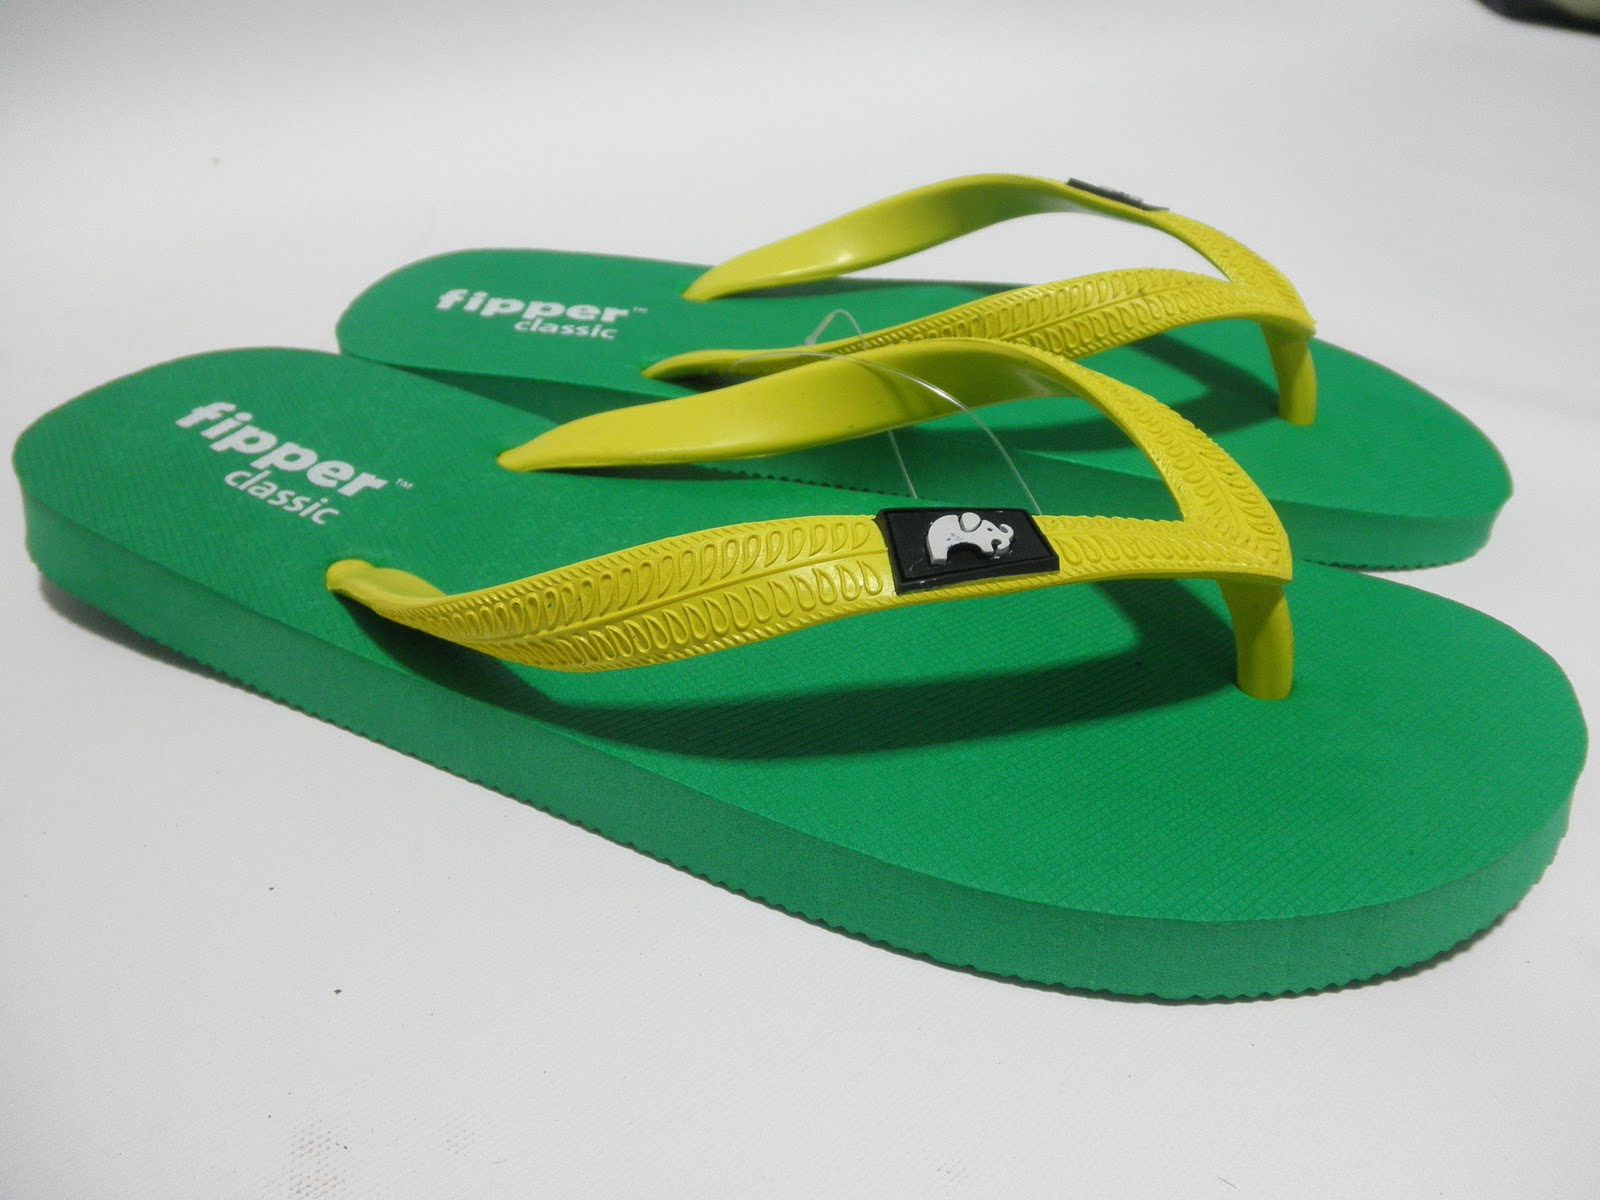 Fipper Classic Green-Yellow Slipper